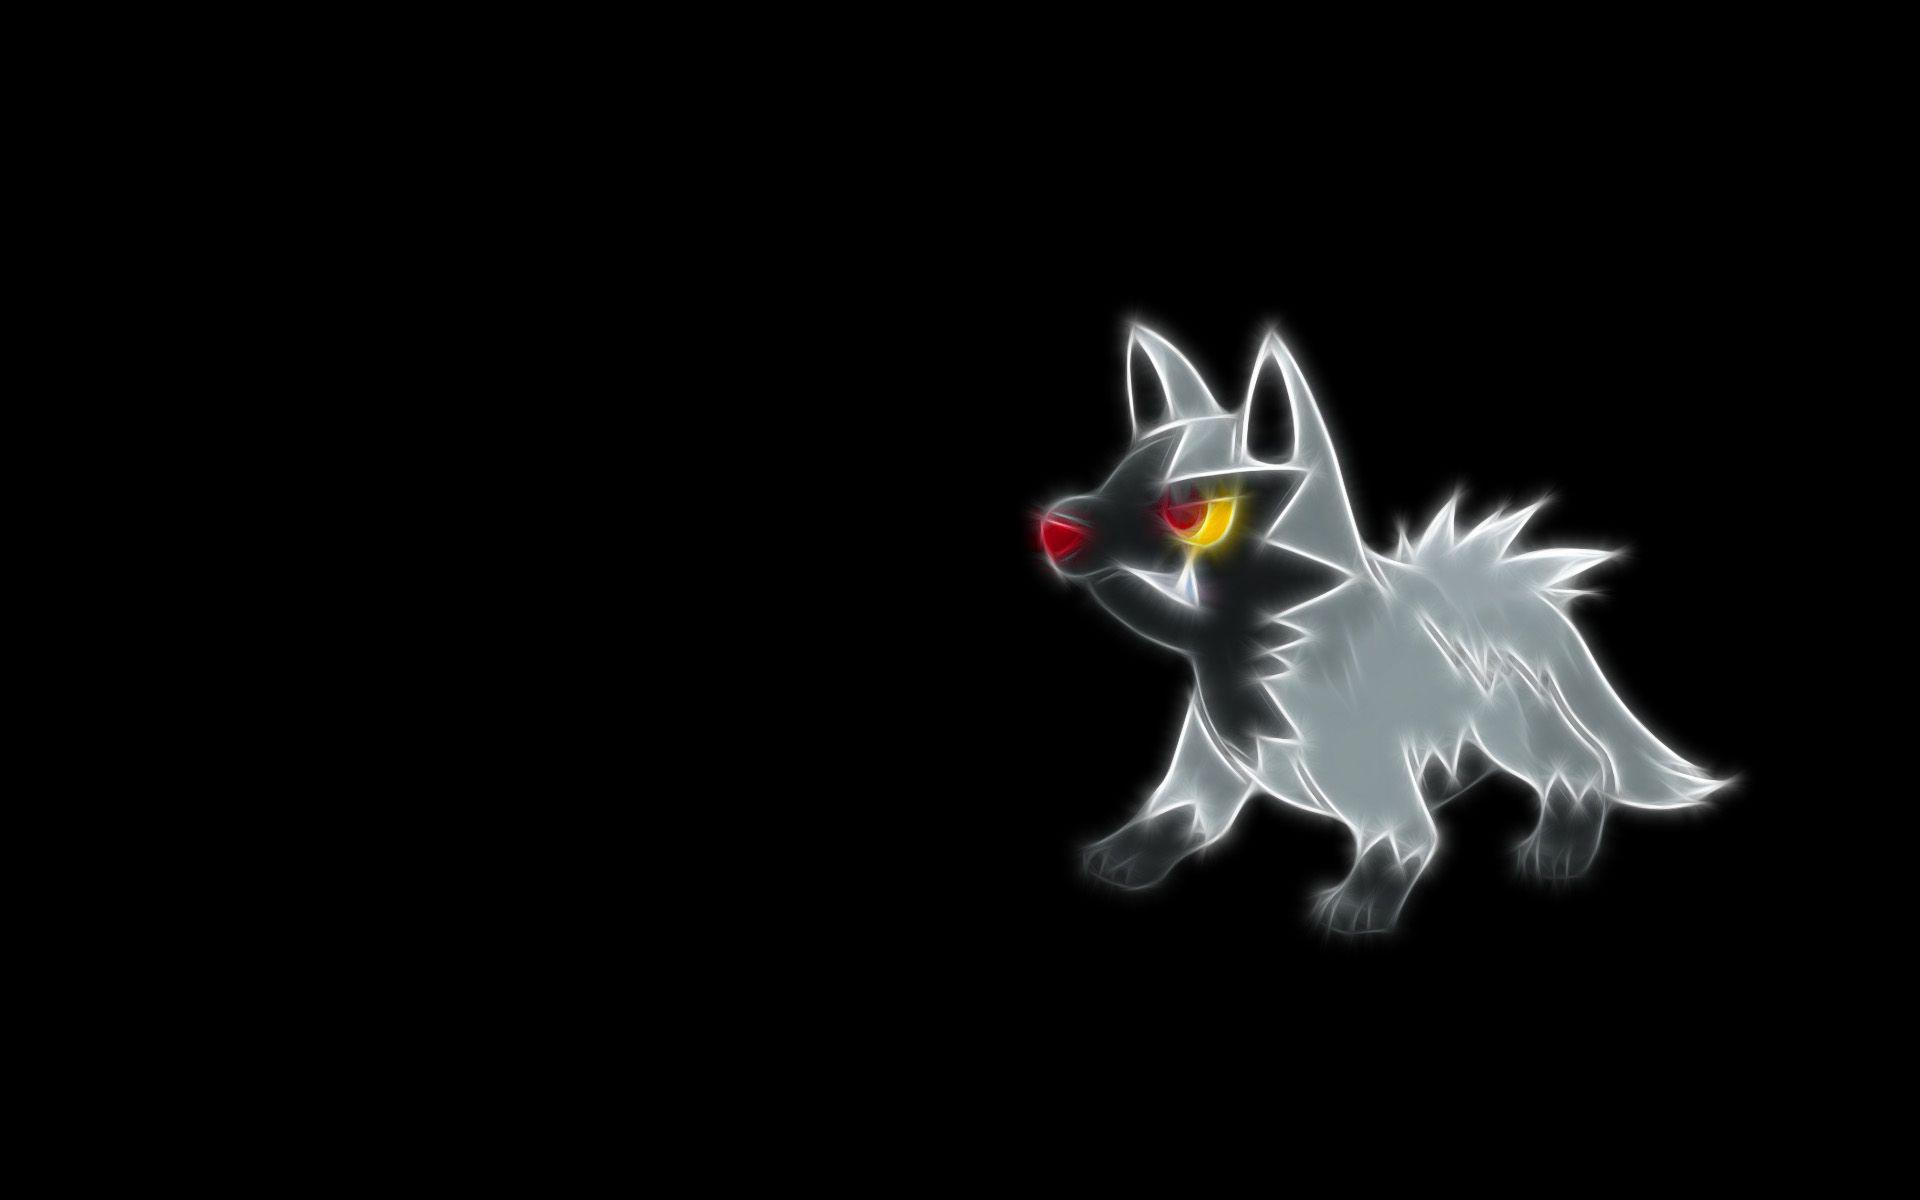 5 Poochyena (Pokémon) HD Wallpapers | Background Images - Wallpaper ...